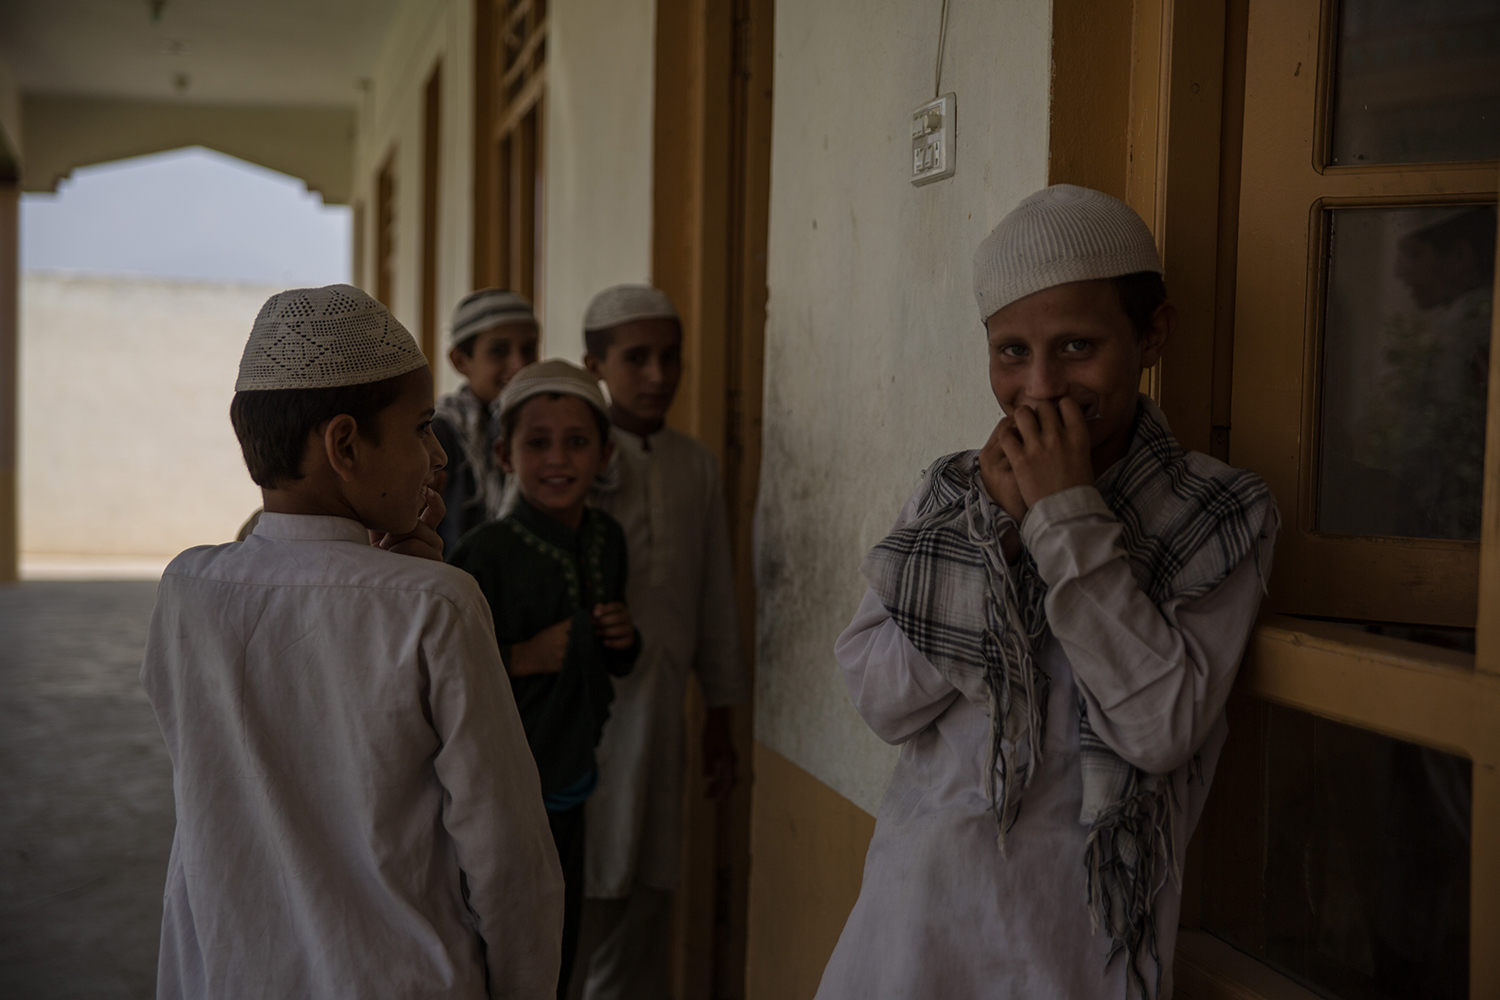 A group of boys gather outside Lamatak's mosque on Sept. 16, 2019.